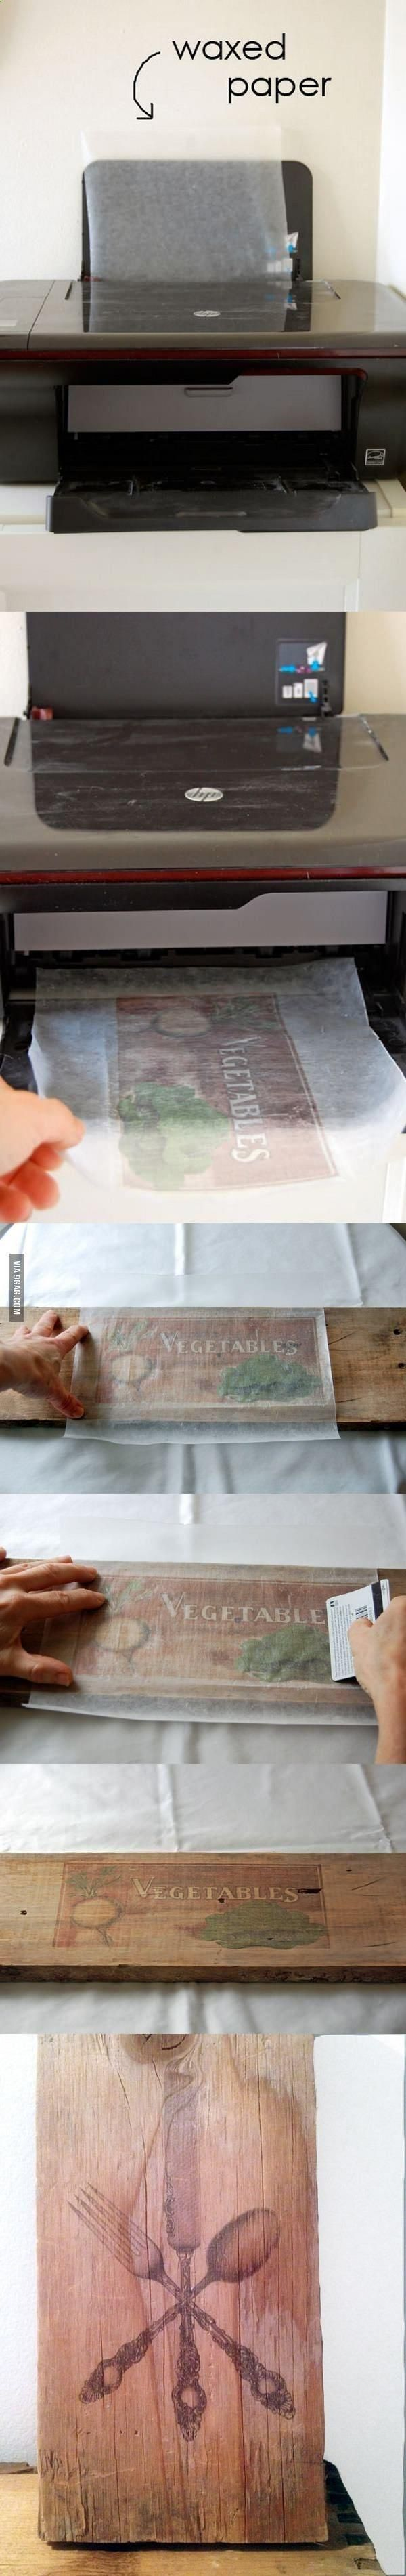 DIY wooden picture- wax paper image transfer - VIDEO TUTORIAL